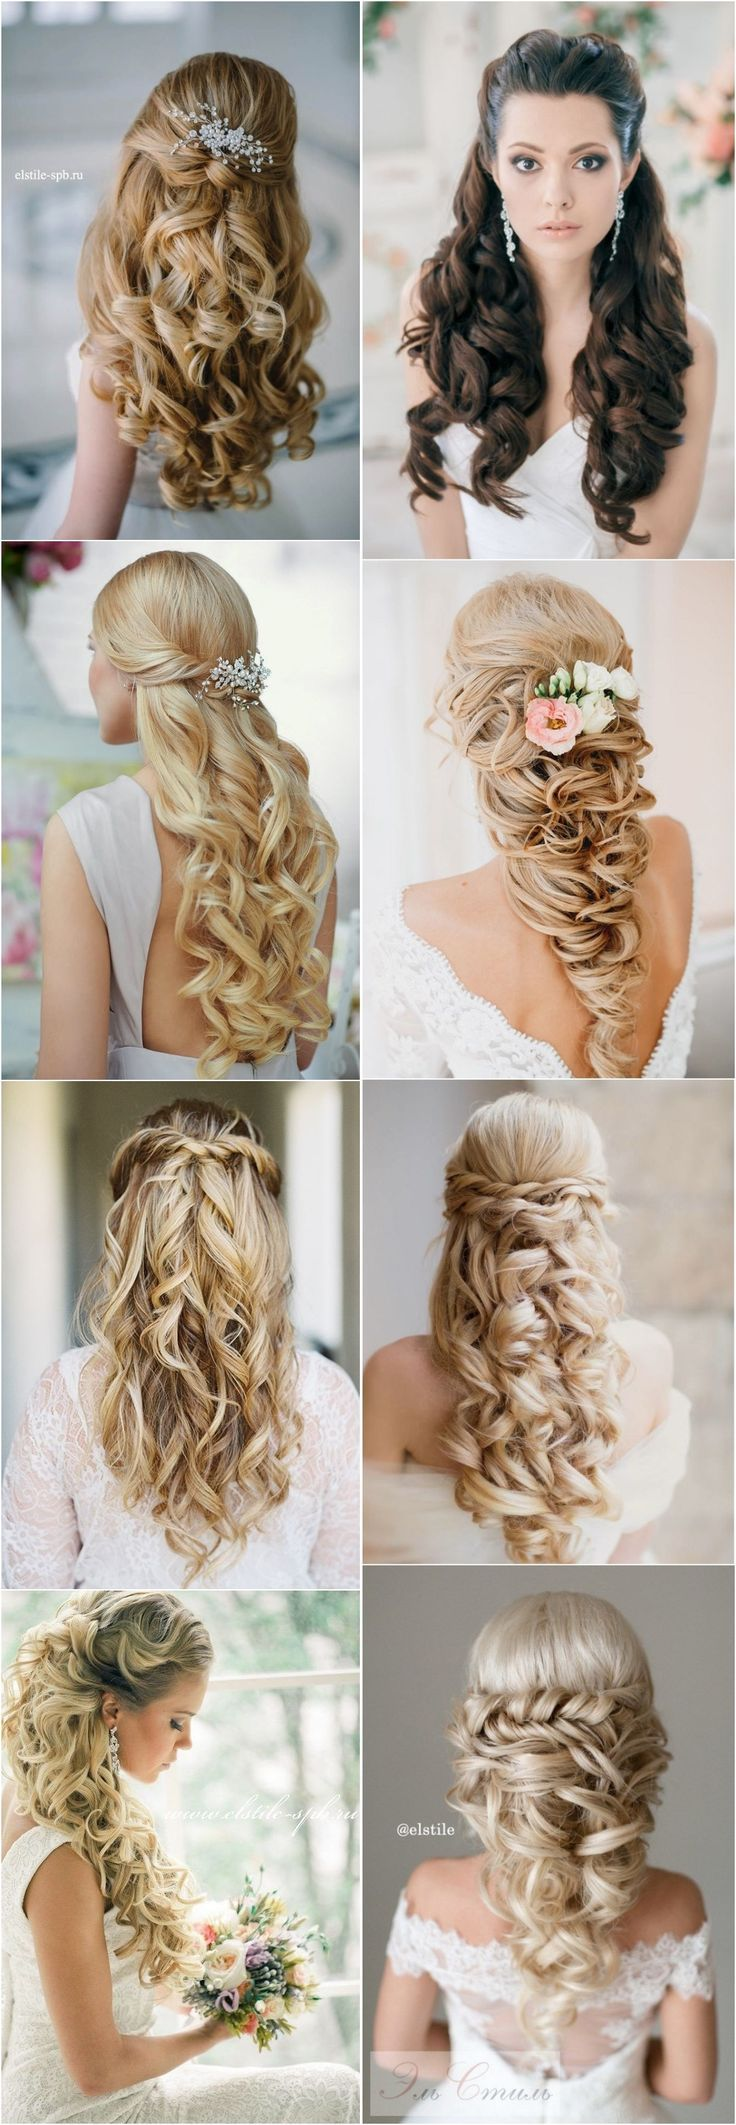 Bridal Hairstyles : Peinado-stunning-half-up-half-down-wedding-hairstyles-with-tutorial/40 Stunning … – Beauty Haircut | Home of Hairstyle Ideas & Inspiration, Hair Colours, & Haircuts Trends